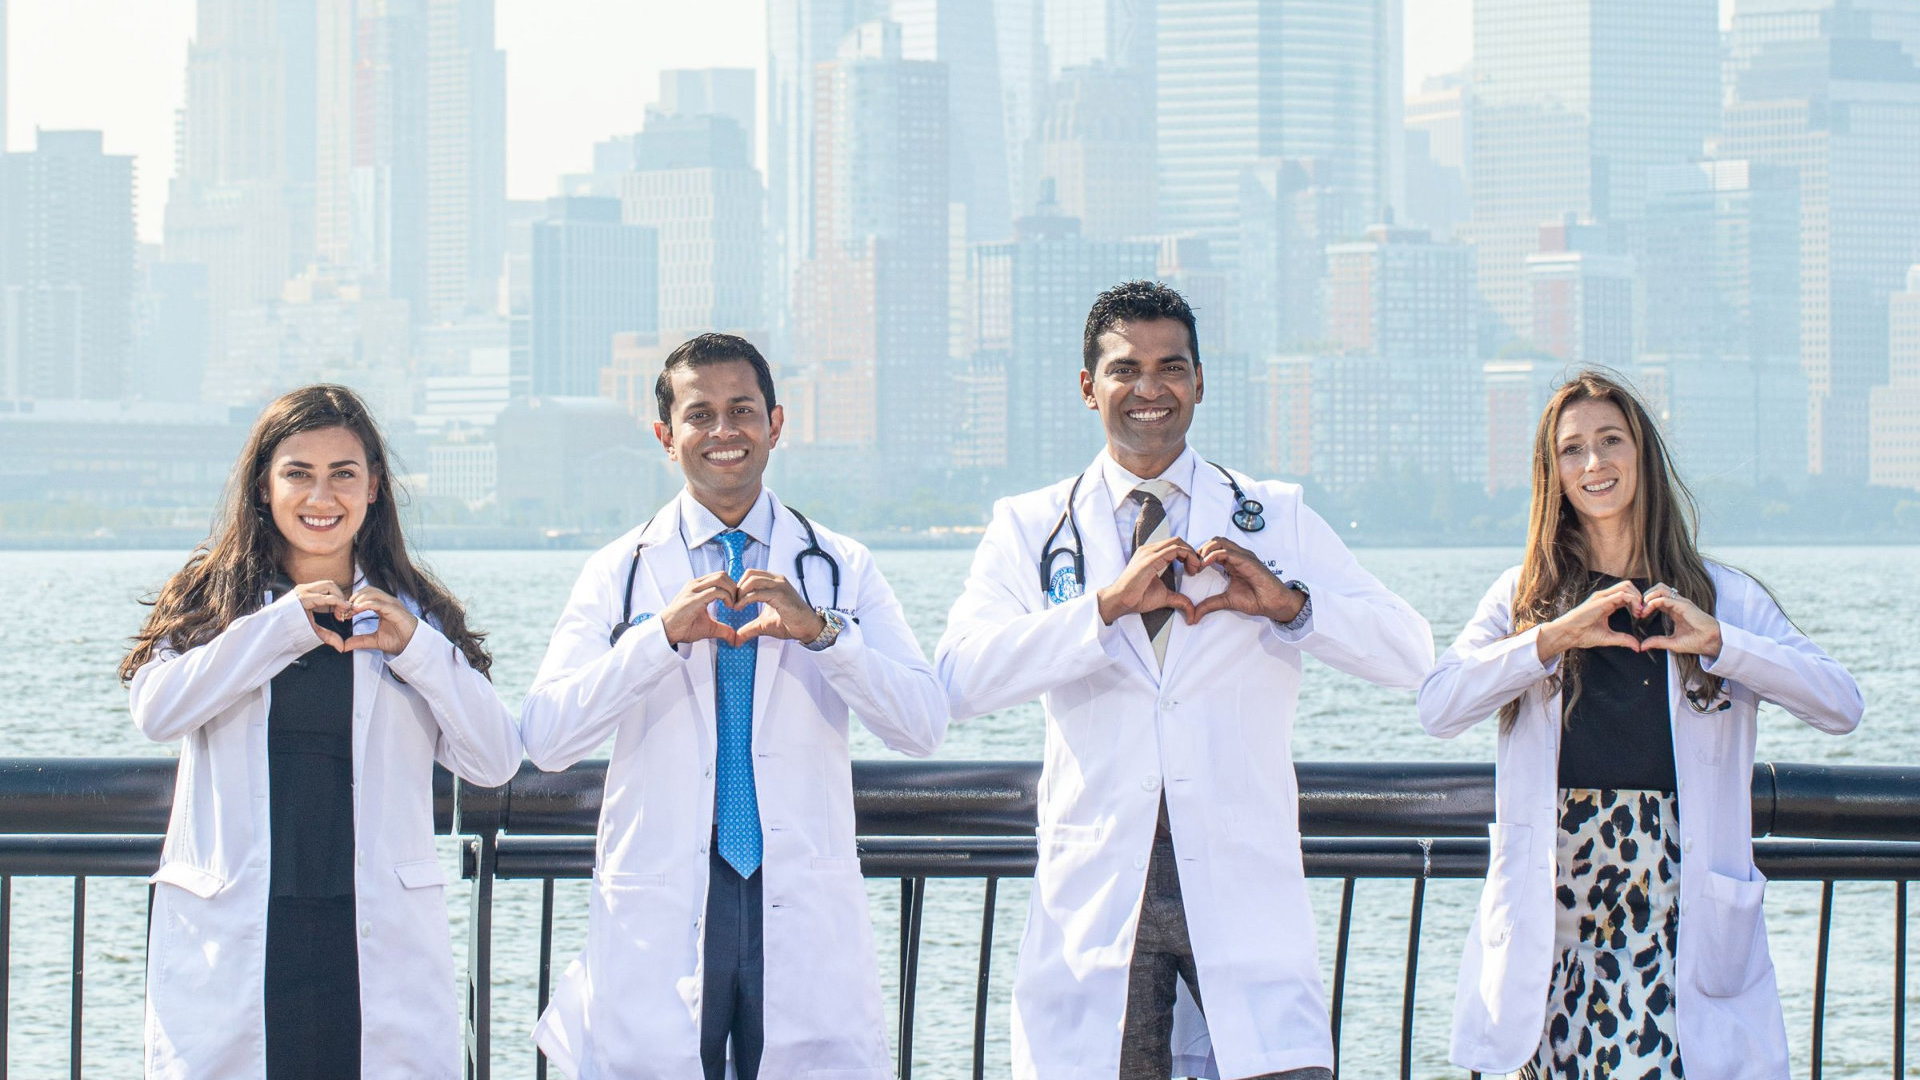 doctors smiling forming heart